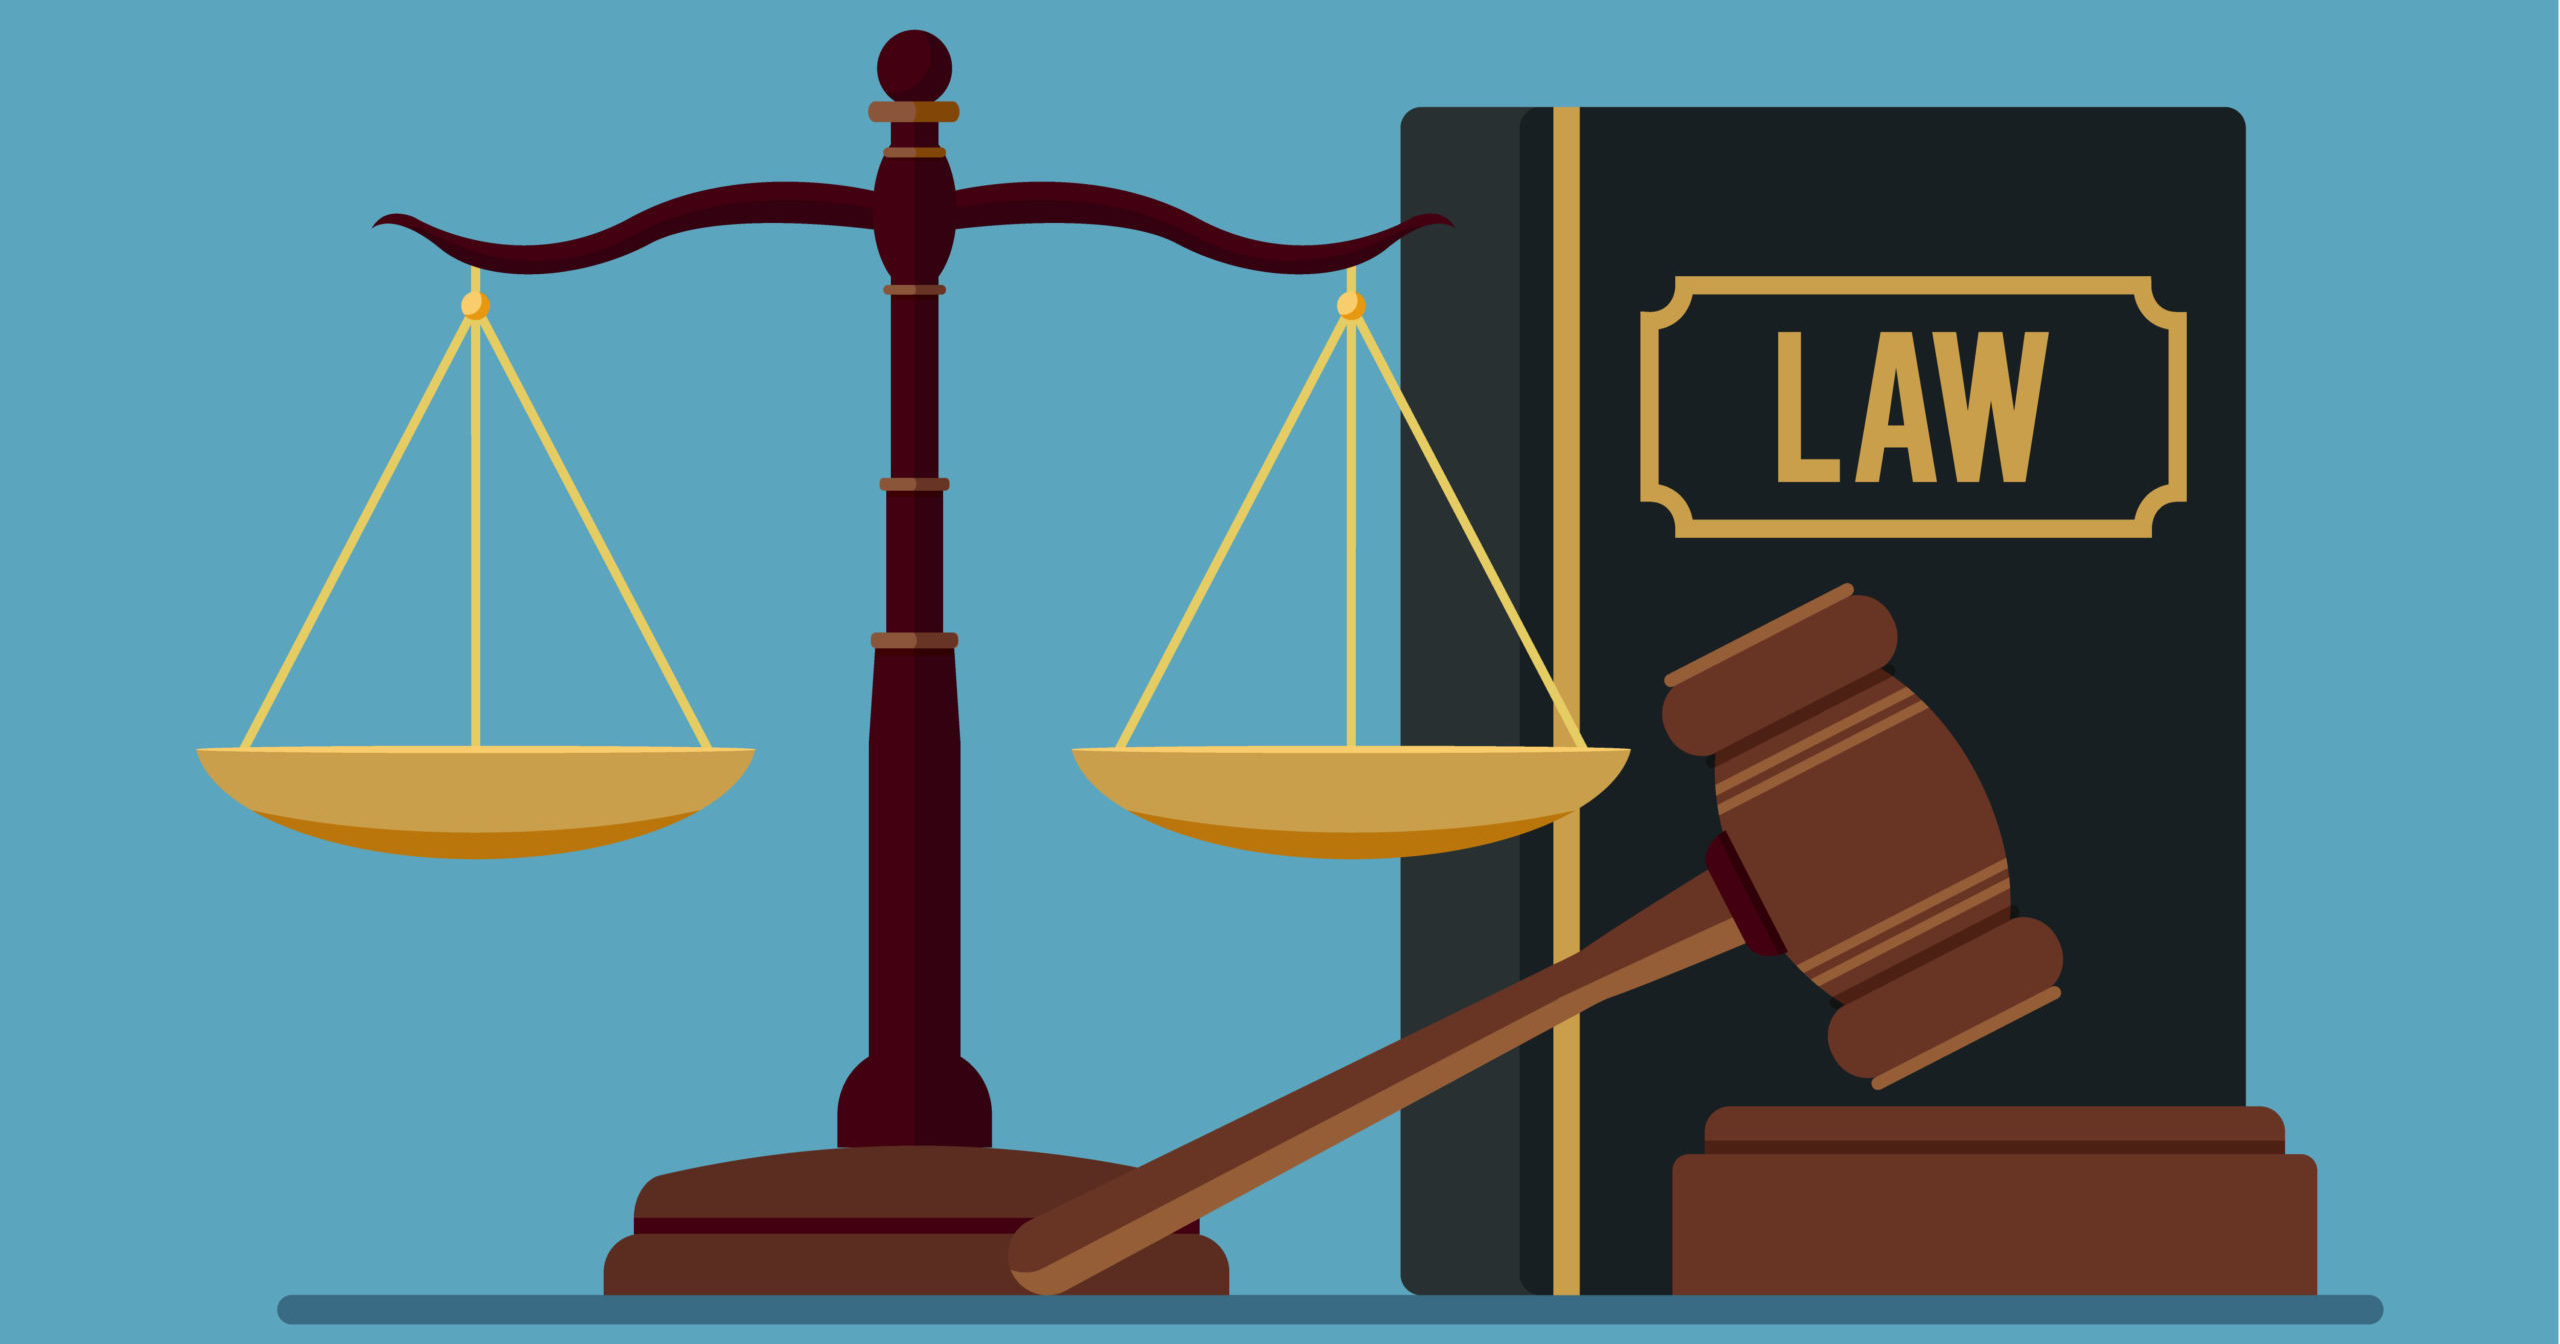 Law and justice concept isolated on blue background.